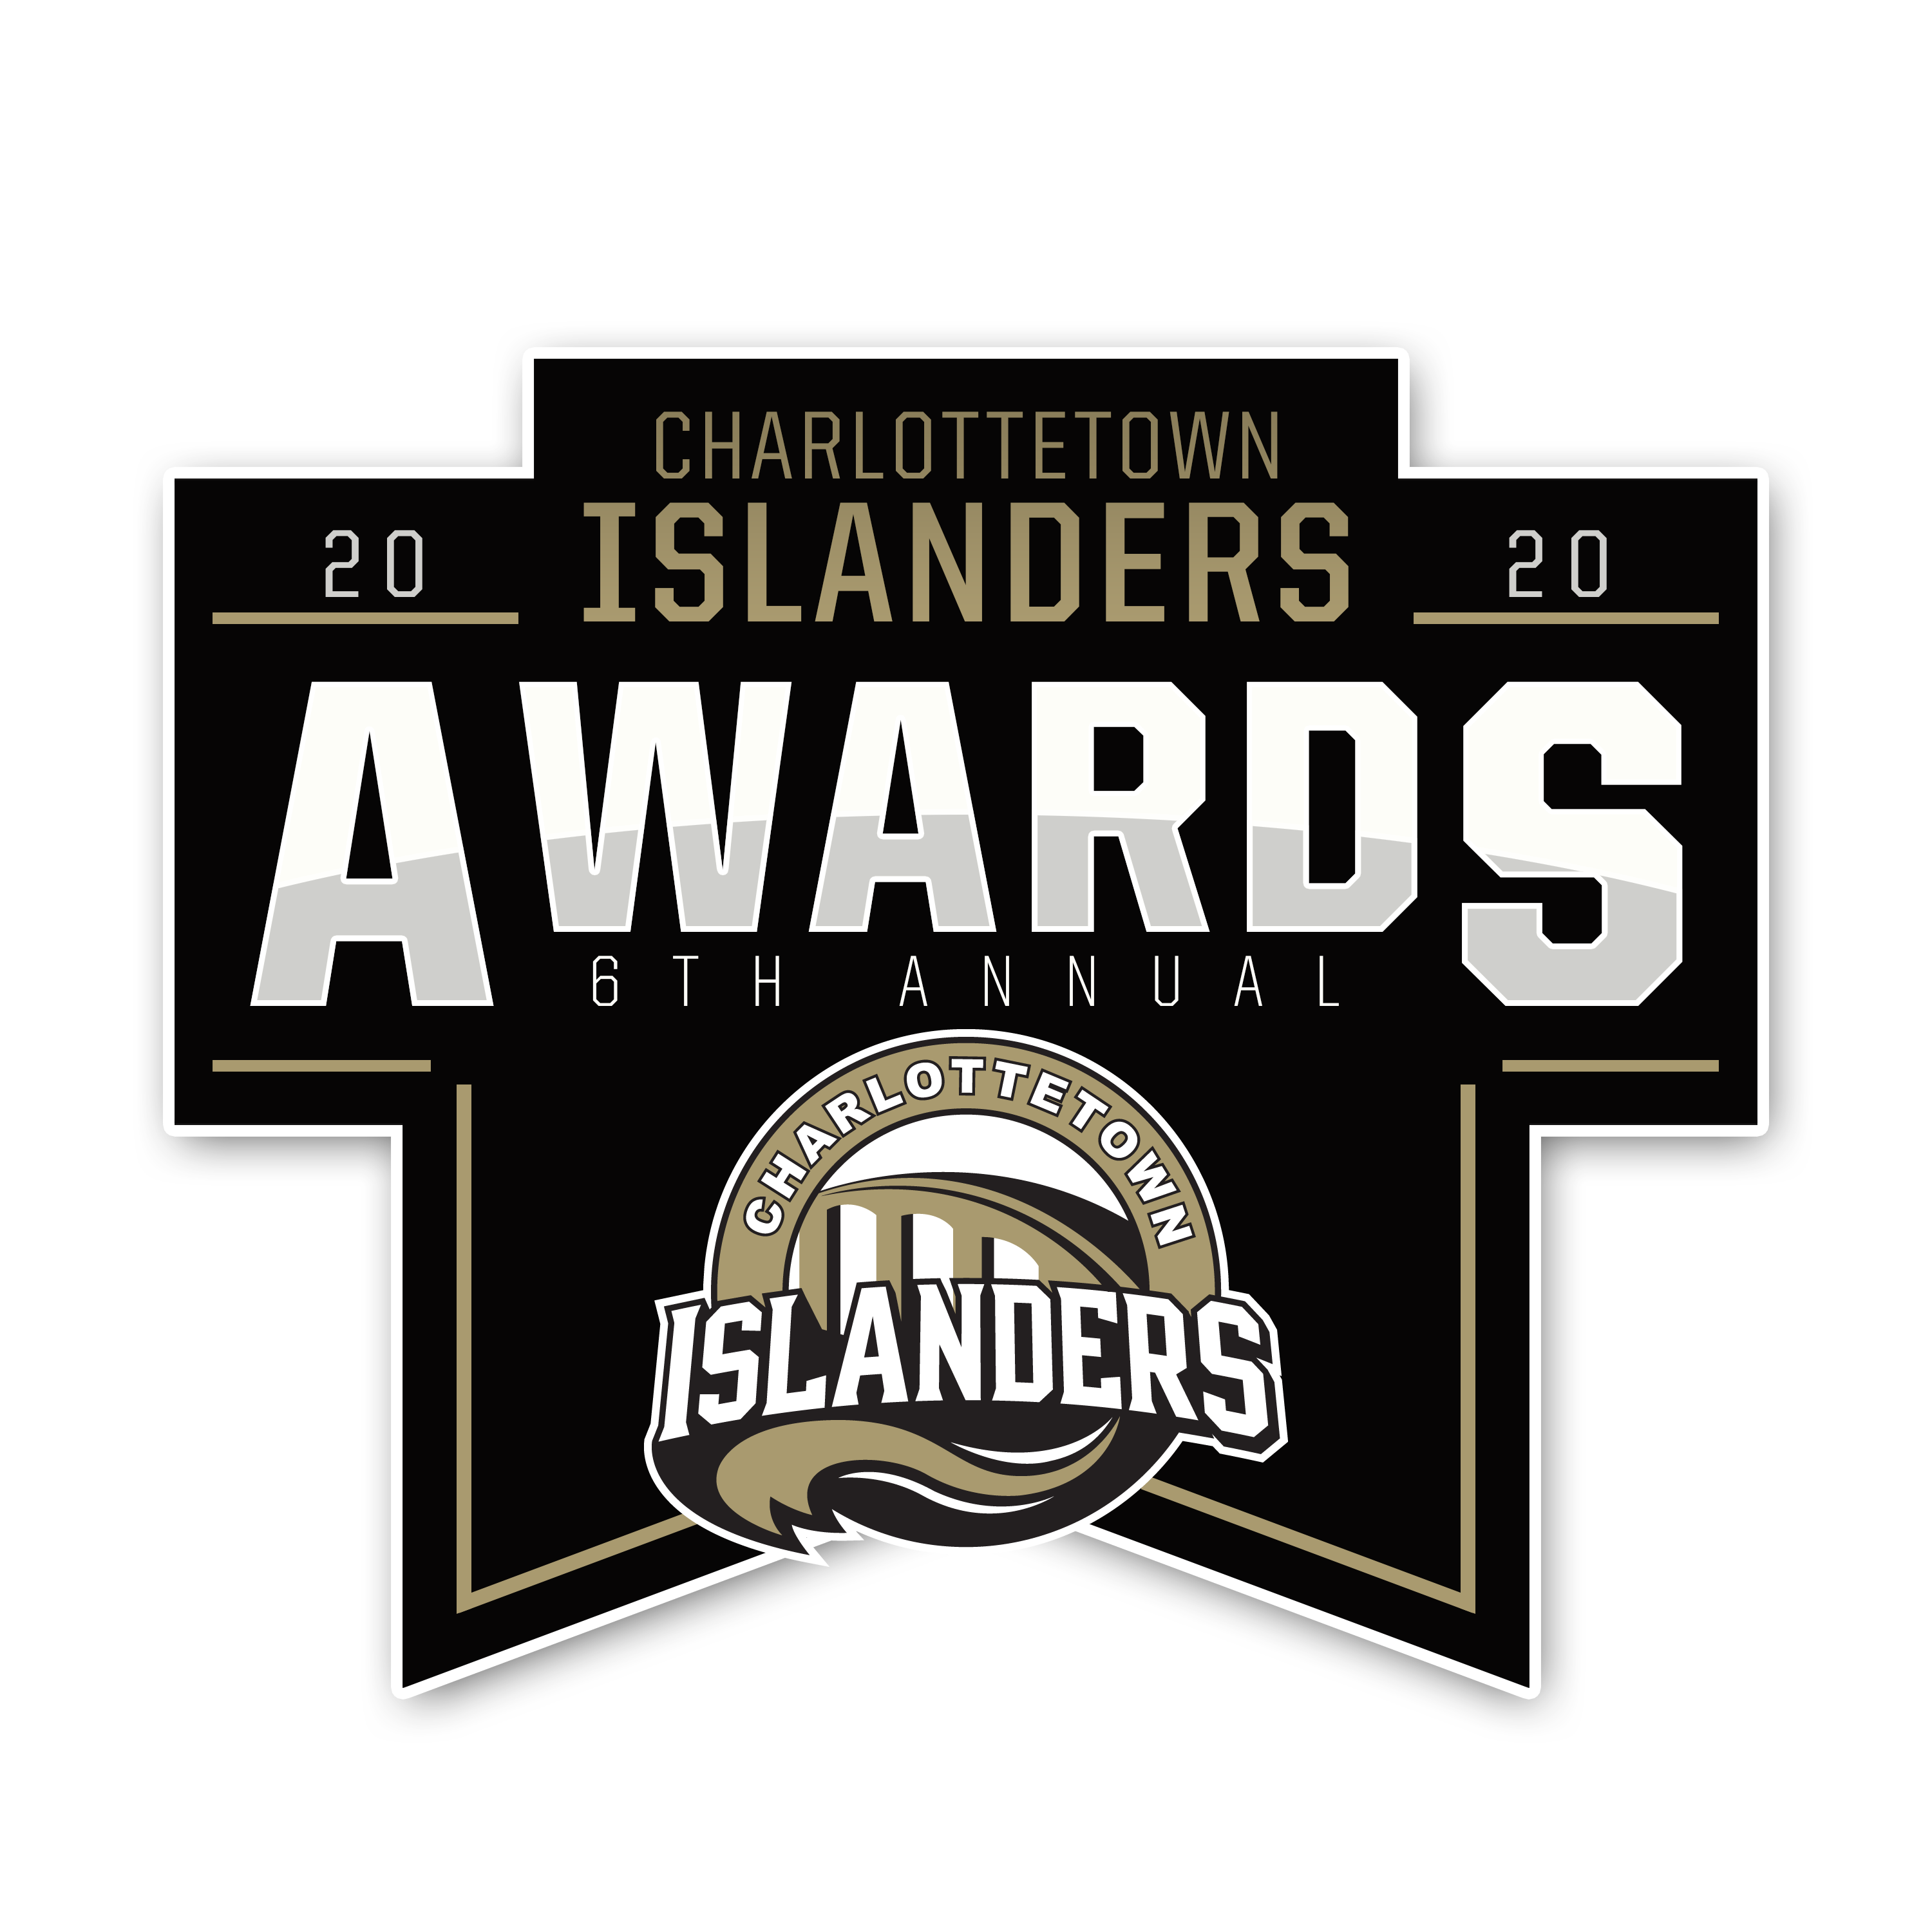 Voting for the 2020 Fan's Choice Awards - Charlottetown ...